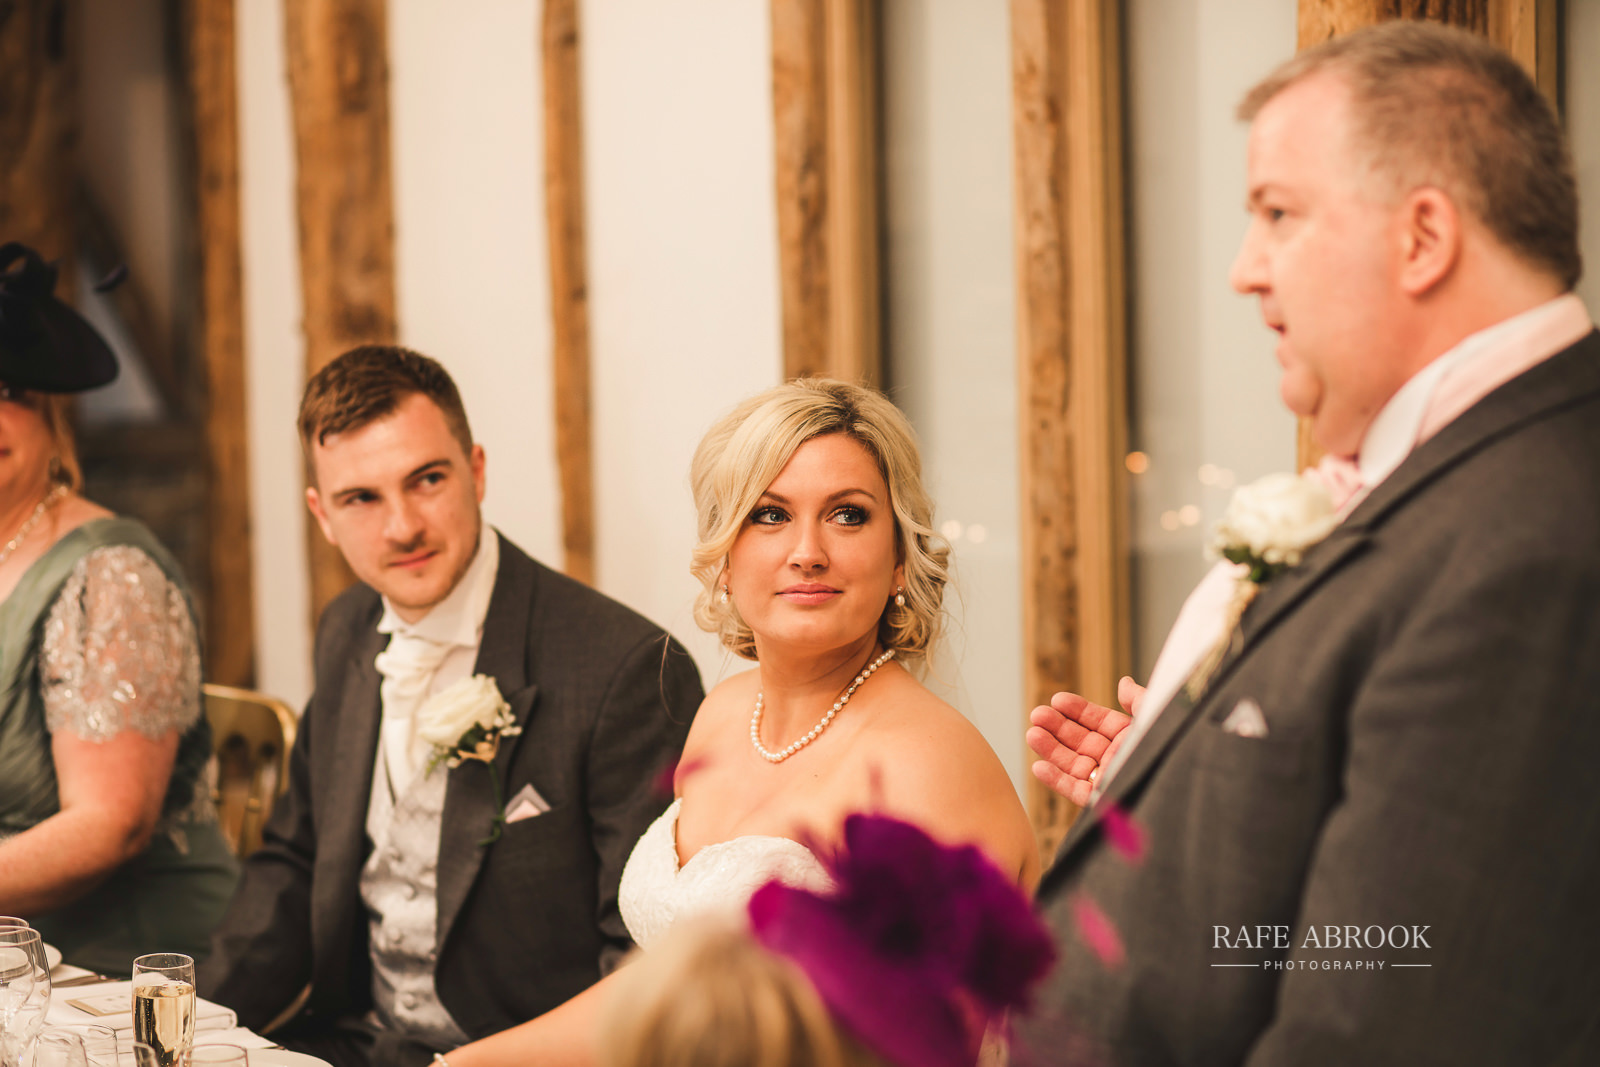 south farm wedding royston hertfordshire wedding photographer rafe abrook photography-1839.jpg